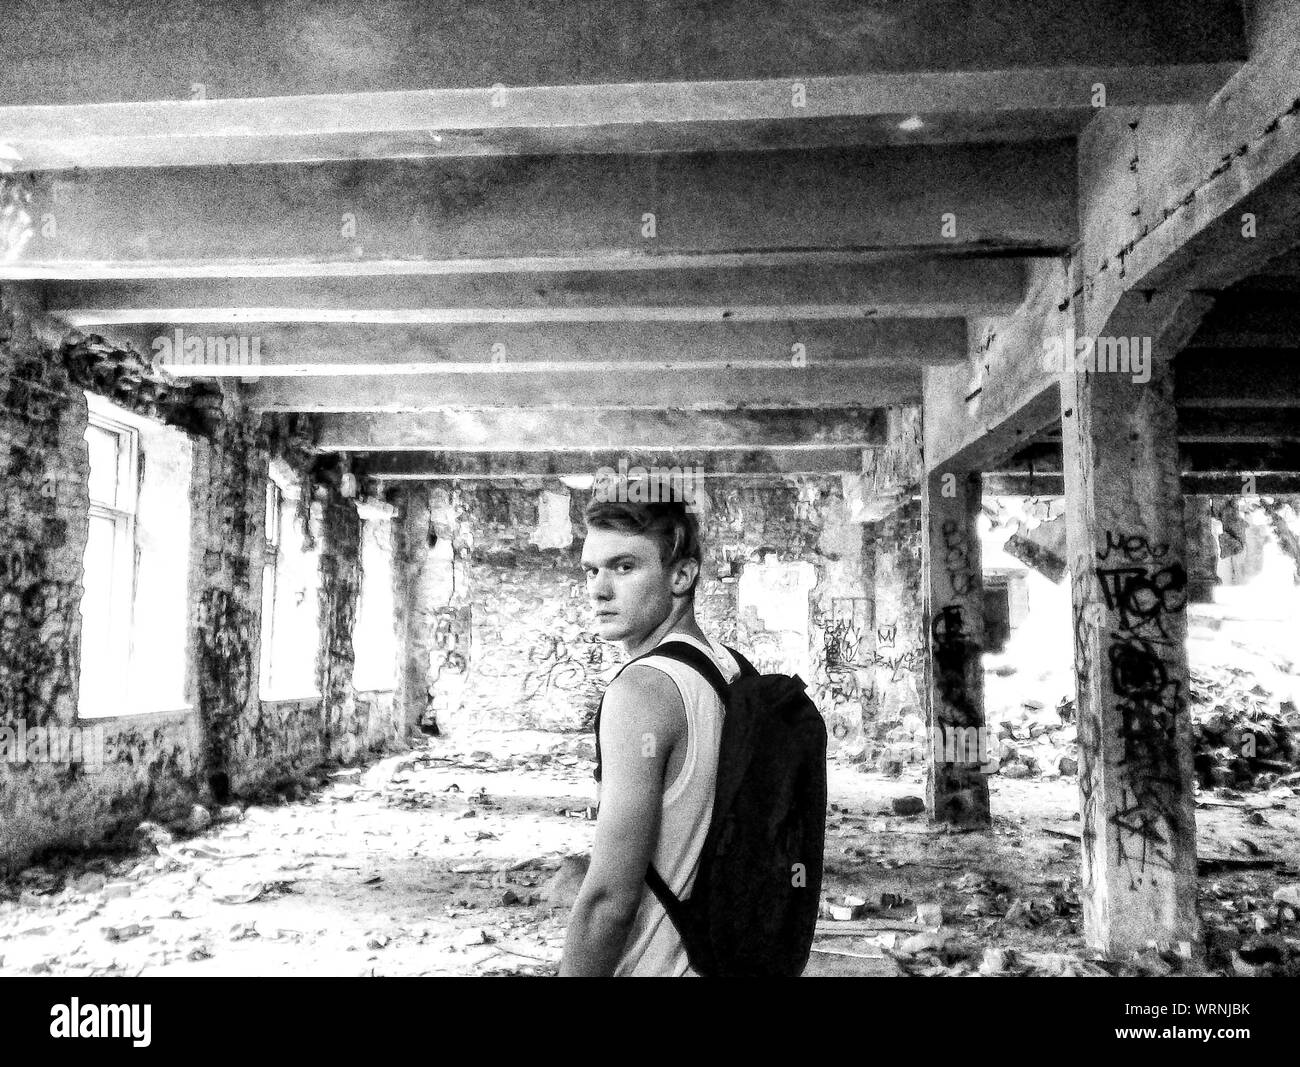 Portrait Of Man Carrying Backpack Standing At Abandoned Old Building Stock Photo Alamy